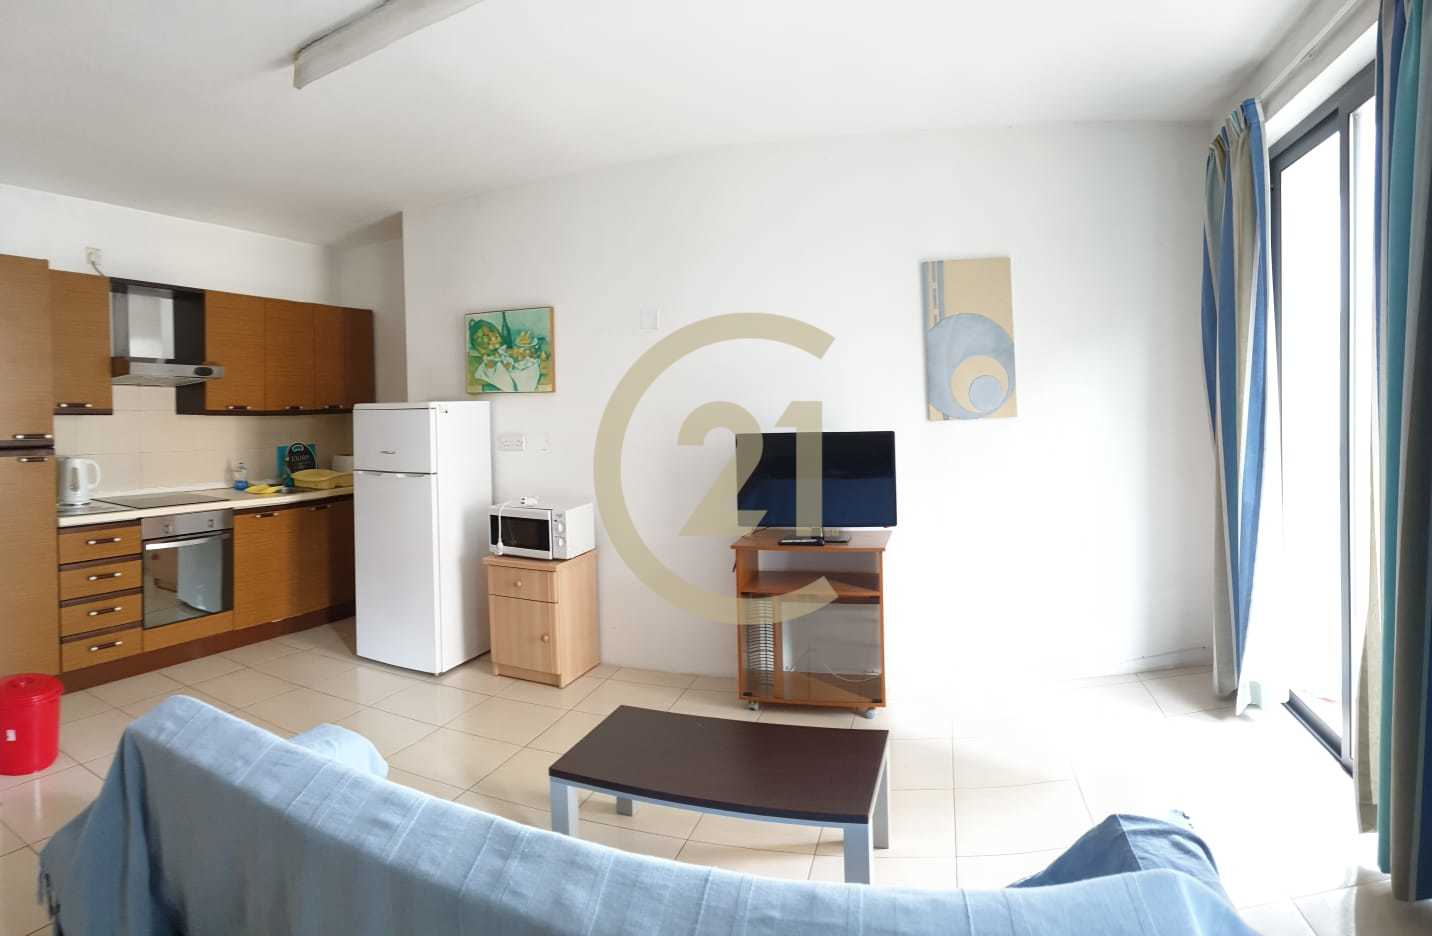 3 Bedroom Apartment For Rent In Msida